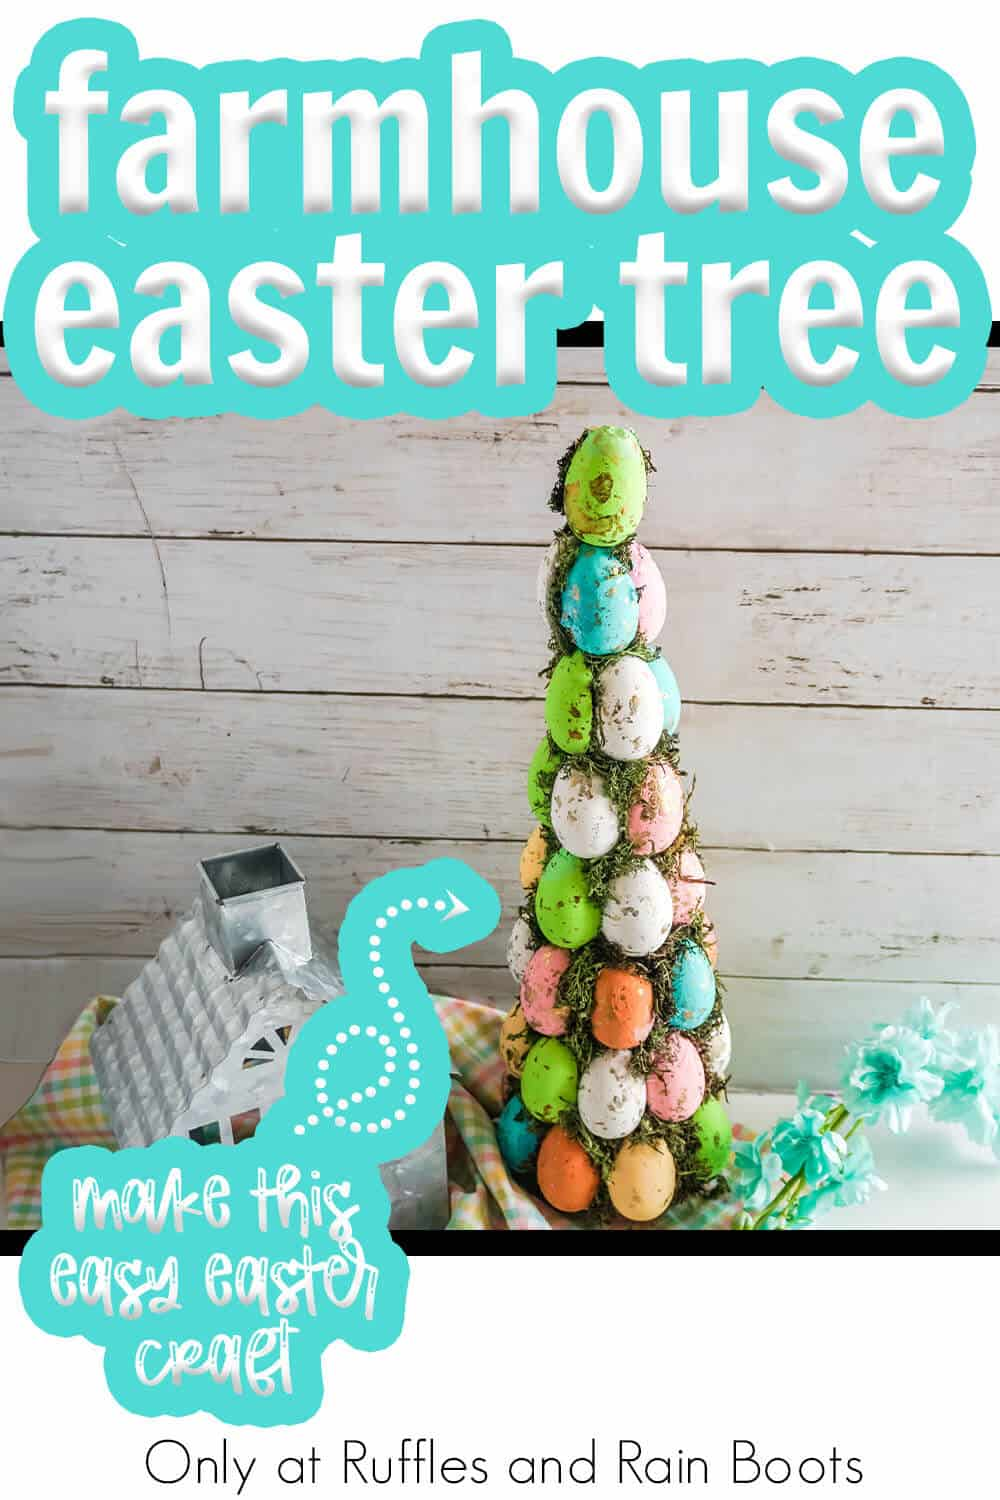 easter egg tree for easter decor with text which reads farmhouse easter tree make this fun easter craft